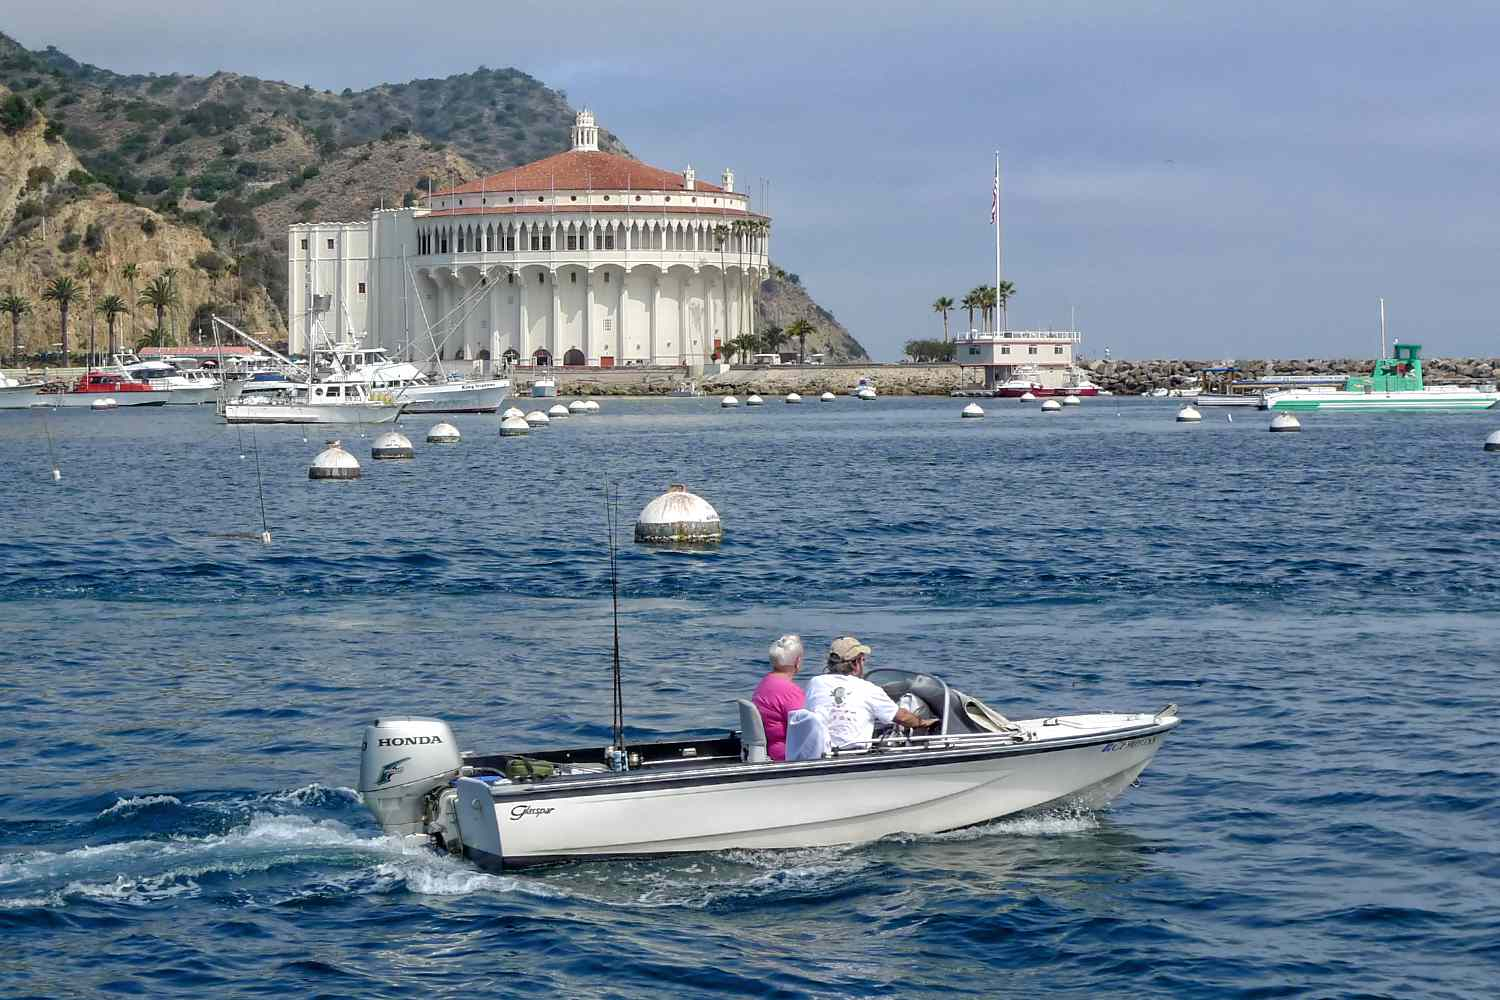 Catalina Casino from the Water